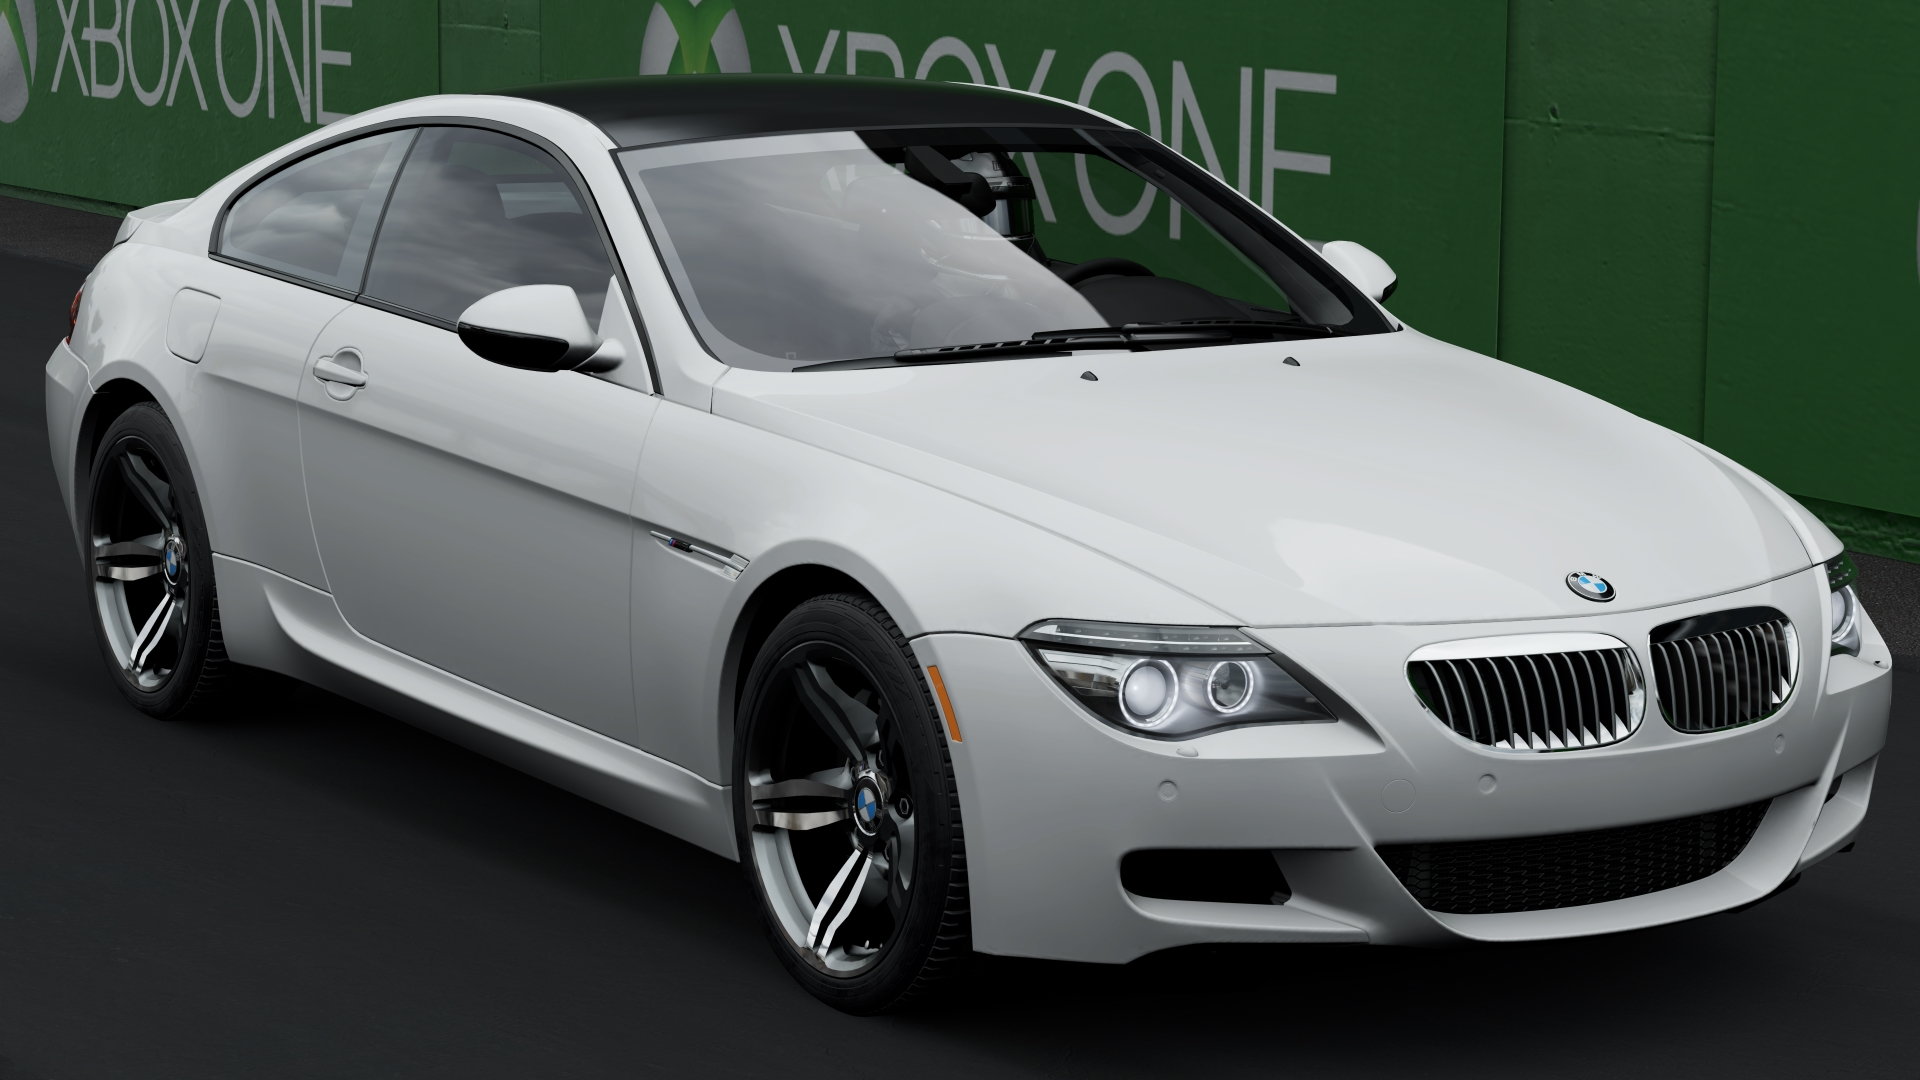 2010 BMW M6 >> Bmw M6 Coupe 2010 Forza Motorsport Wiki Fandom Powered